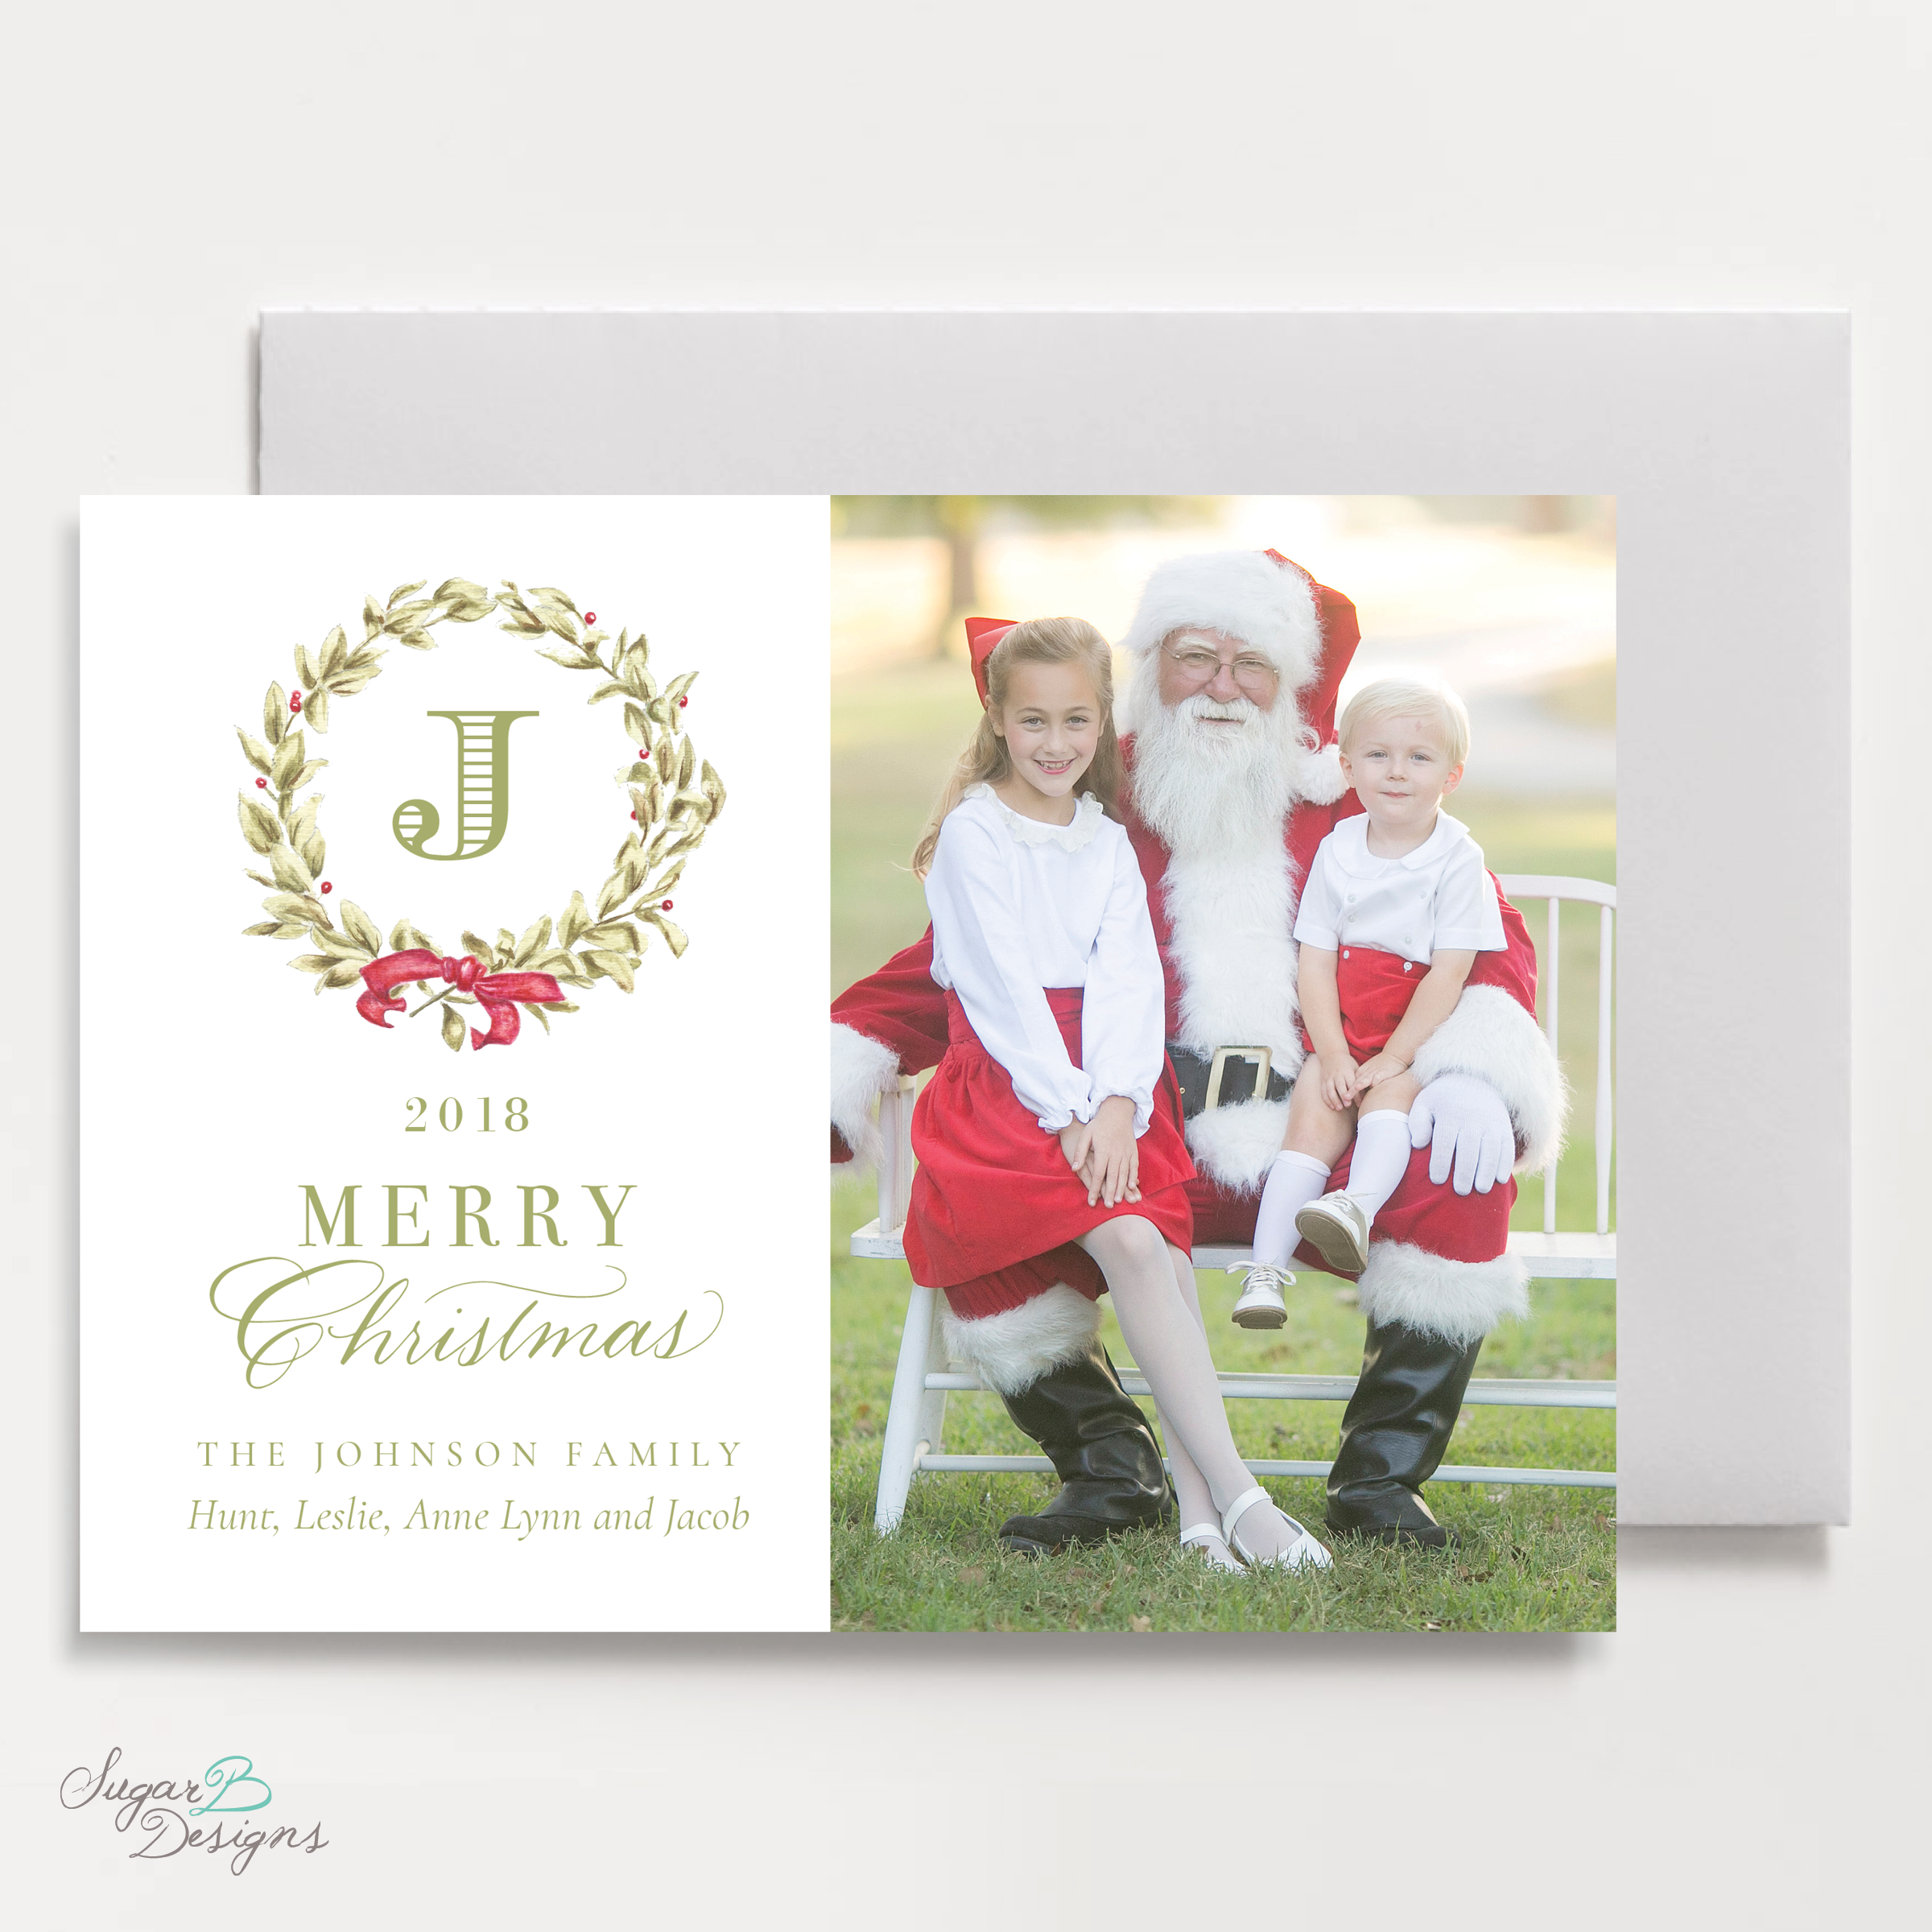 Meryl Wreath Red Christmas Card LANDSCAPE front by Sugar B Designs.png